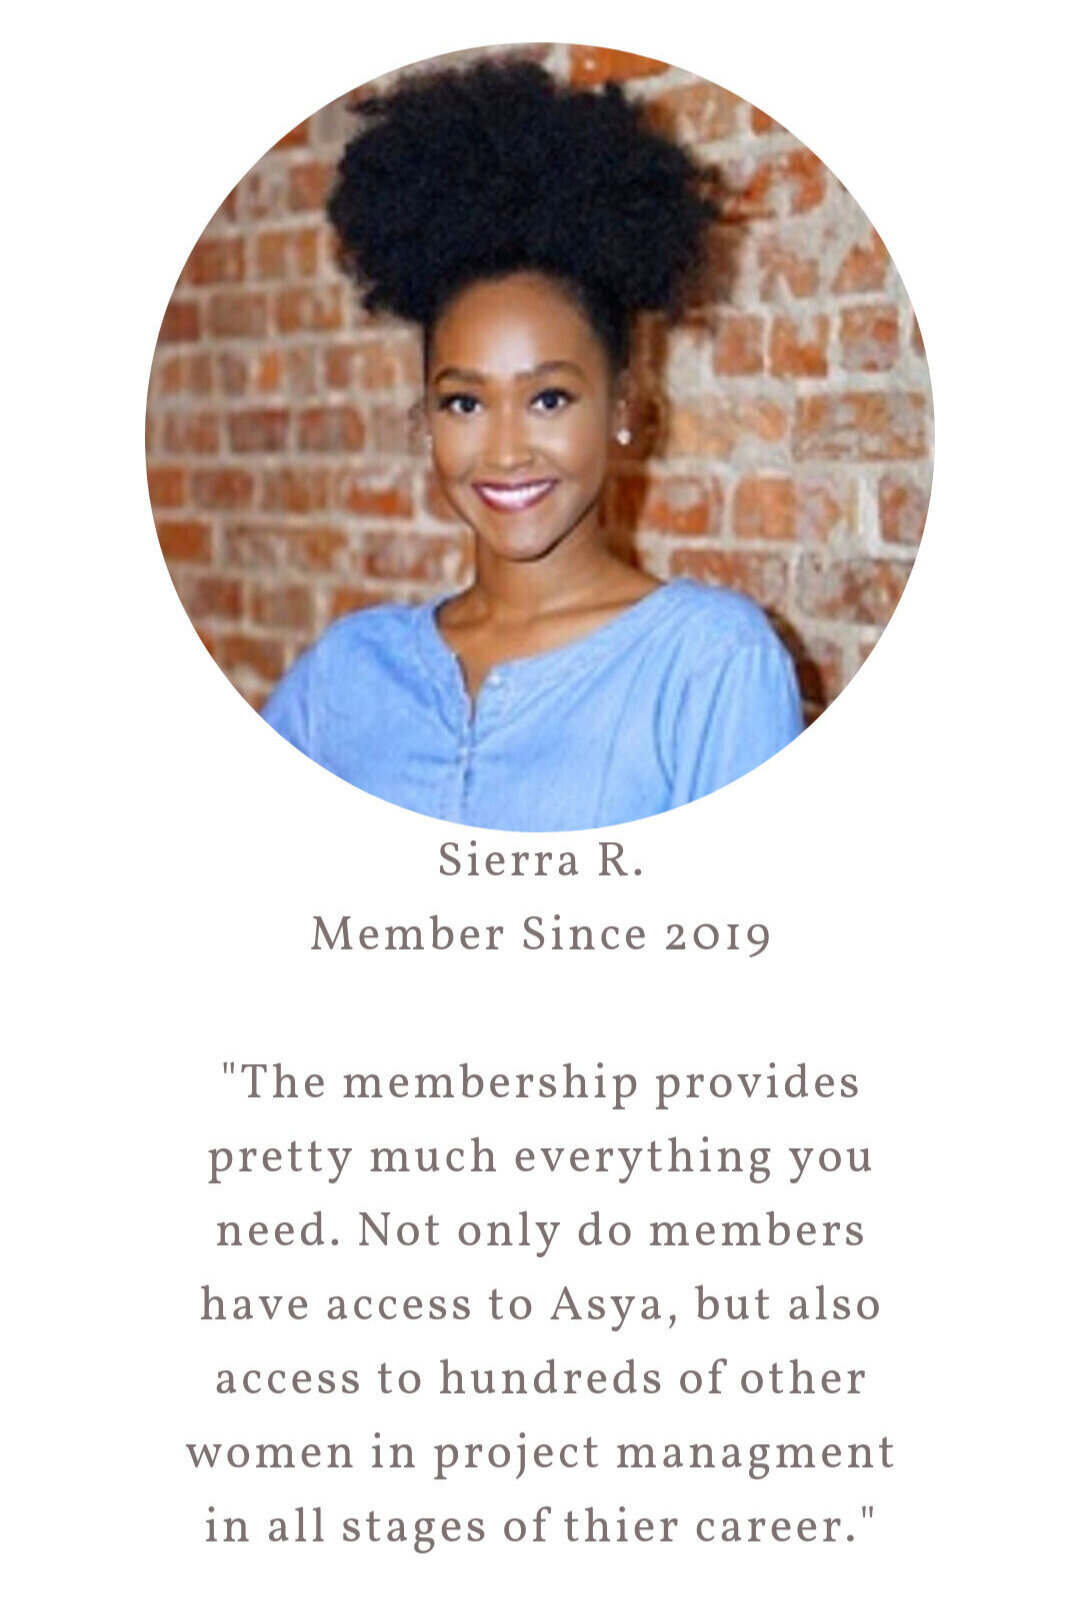 _The membership provides pretty much everything you need. Not only do members have access to Asya, but also access to hundreds of other women in project managment in all stages of thier career._(1).png